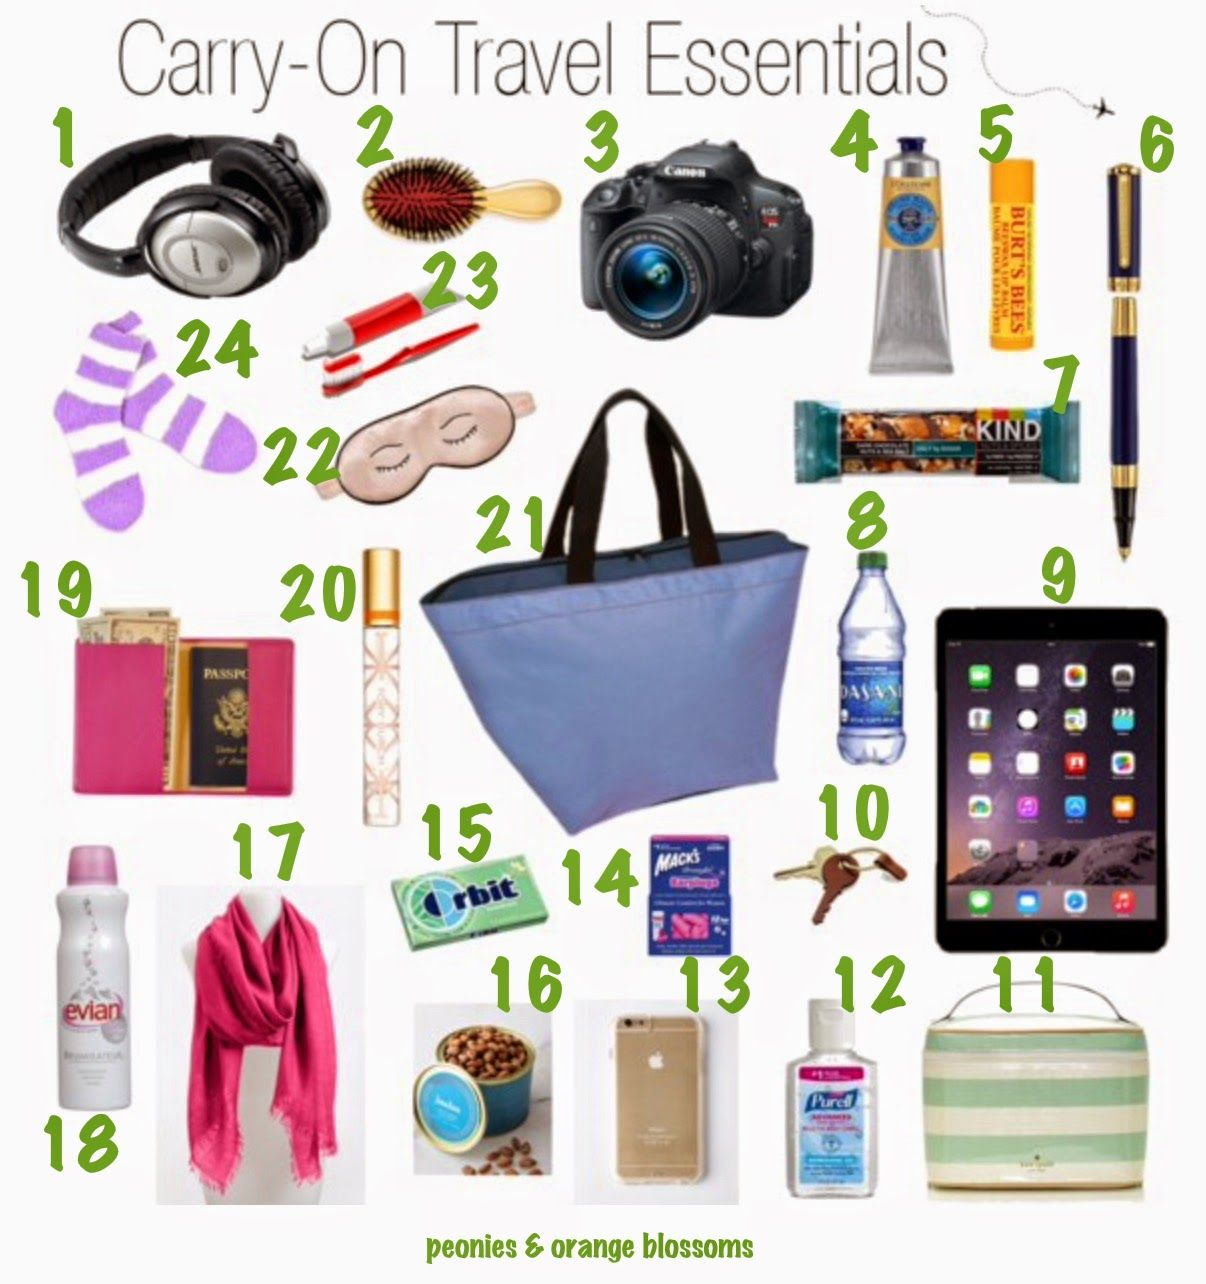 Travel Tips Packing Hacks Tips Essentials: What To Pack For Vacation In Your Carry-On